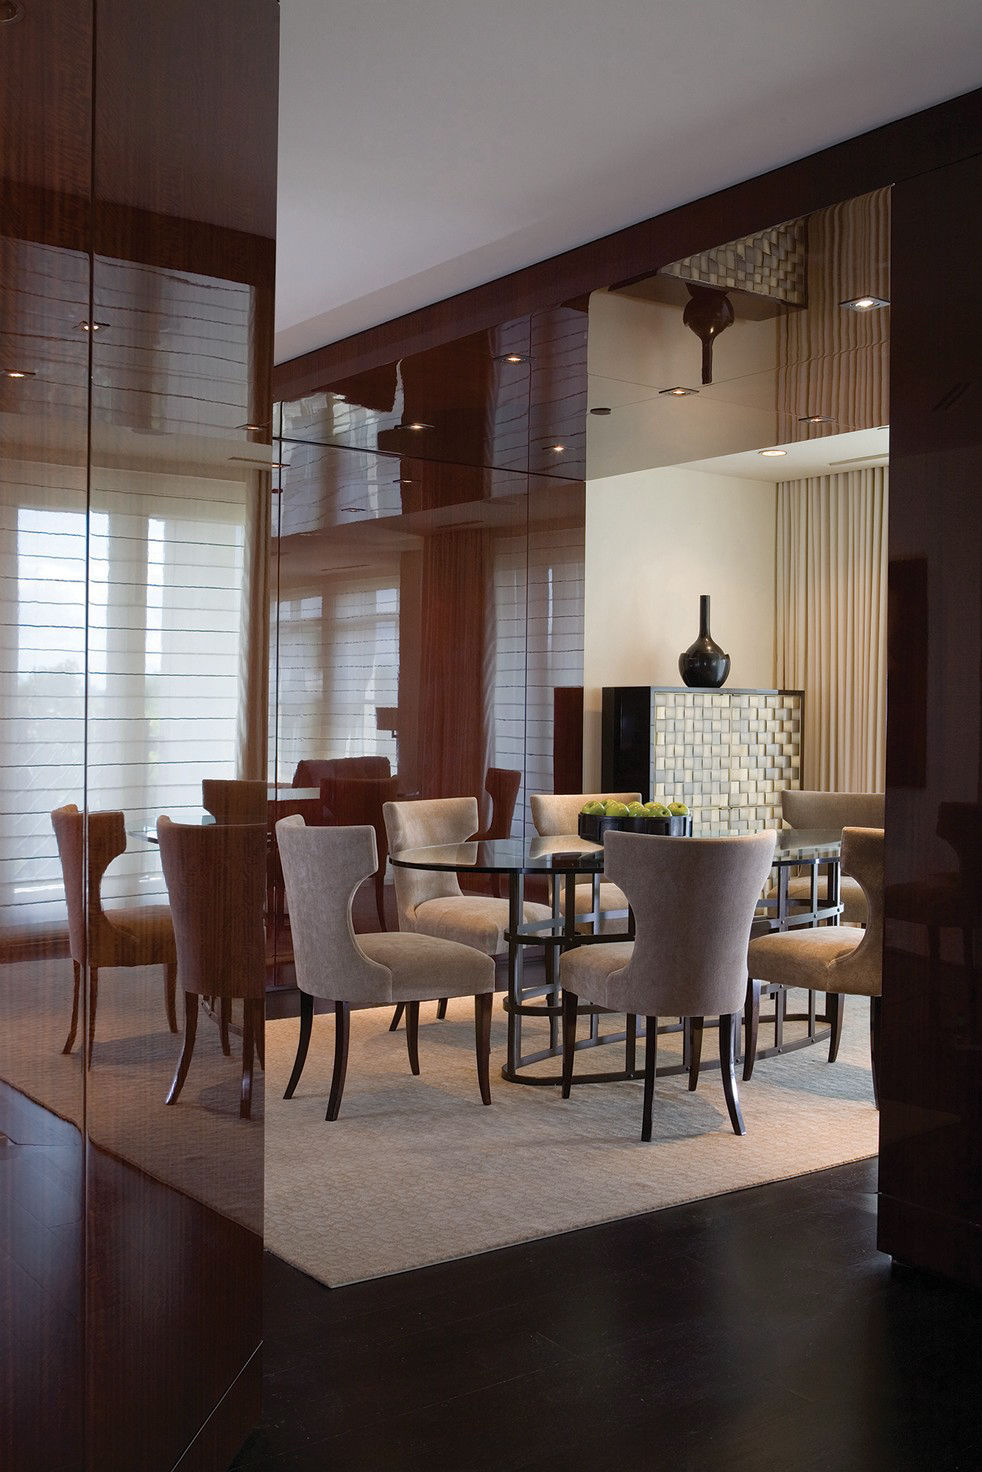 Two Story Living Room Curtains 9 Tips For Making Your Little Used Dining Room Warm Inviting